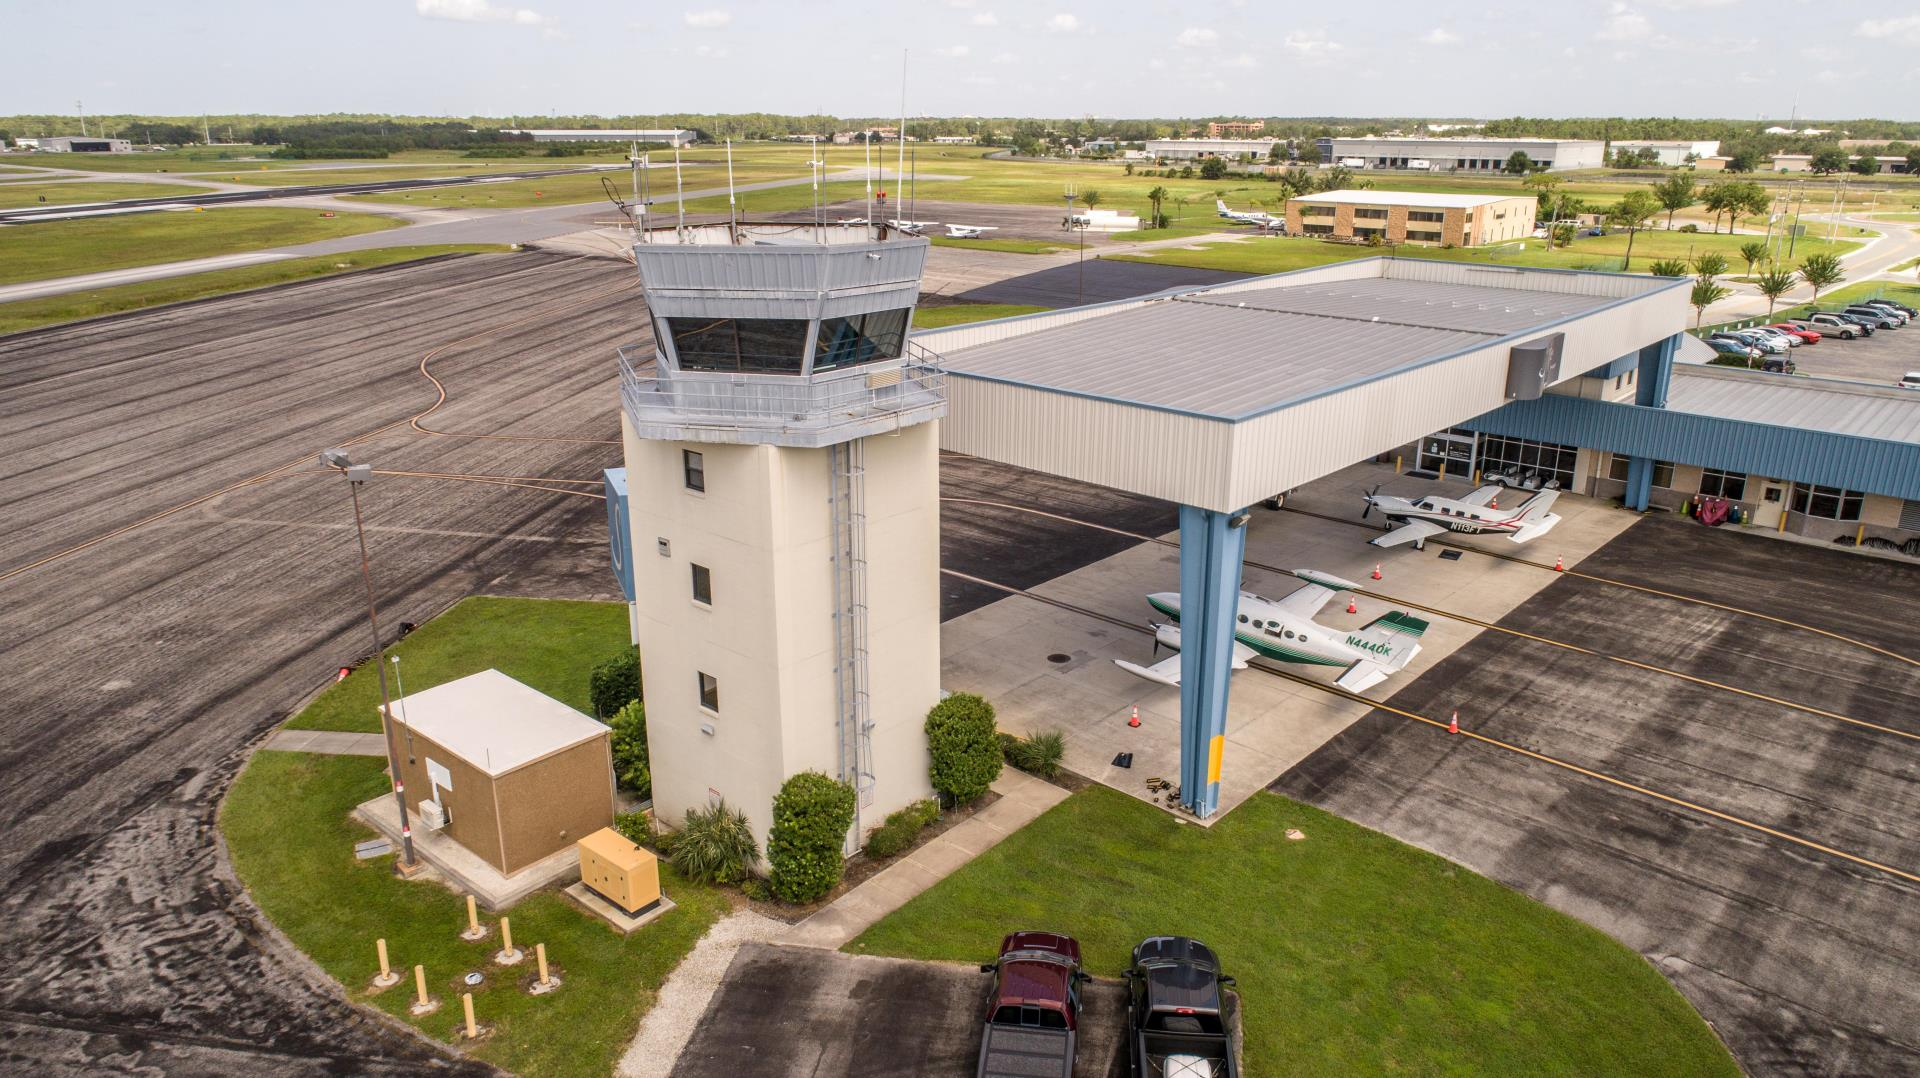 Kissimmee Gateway Airport Tower and planes